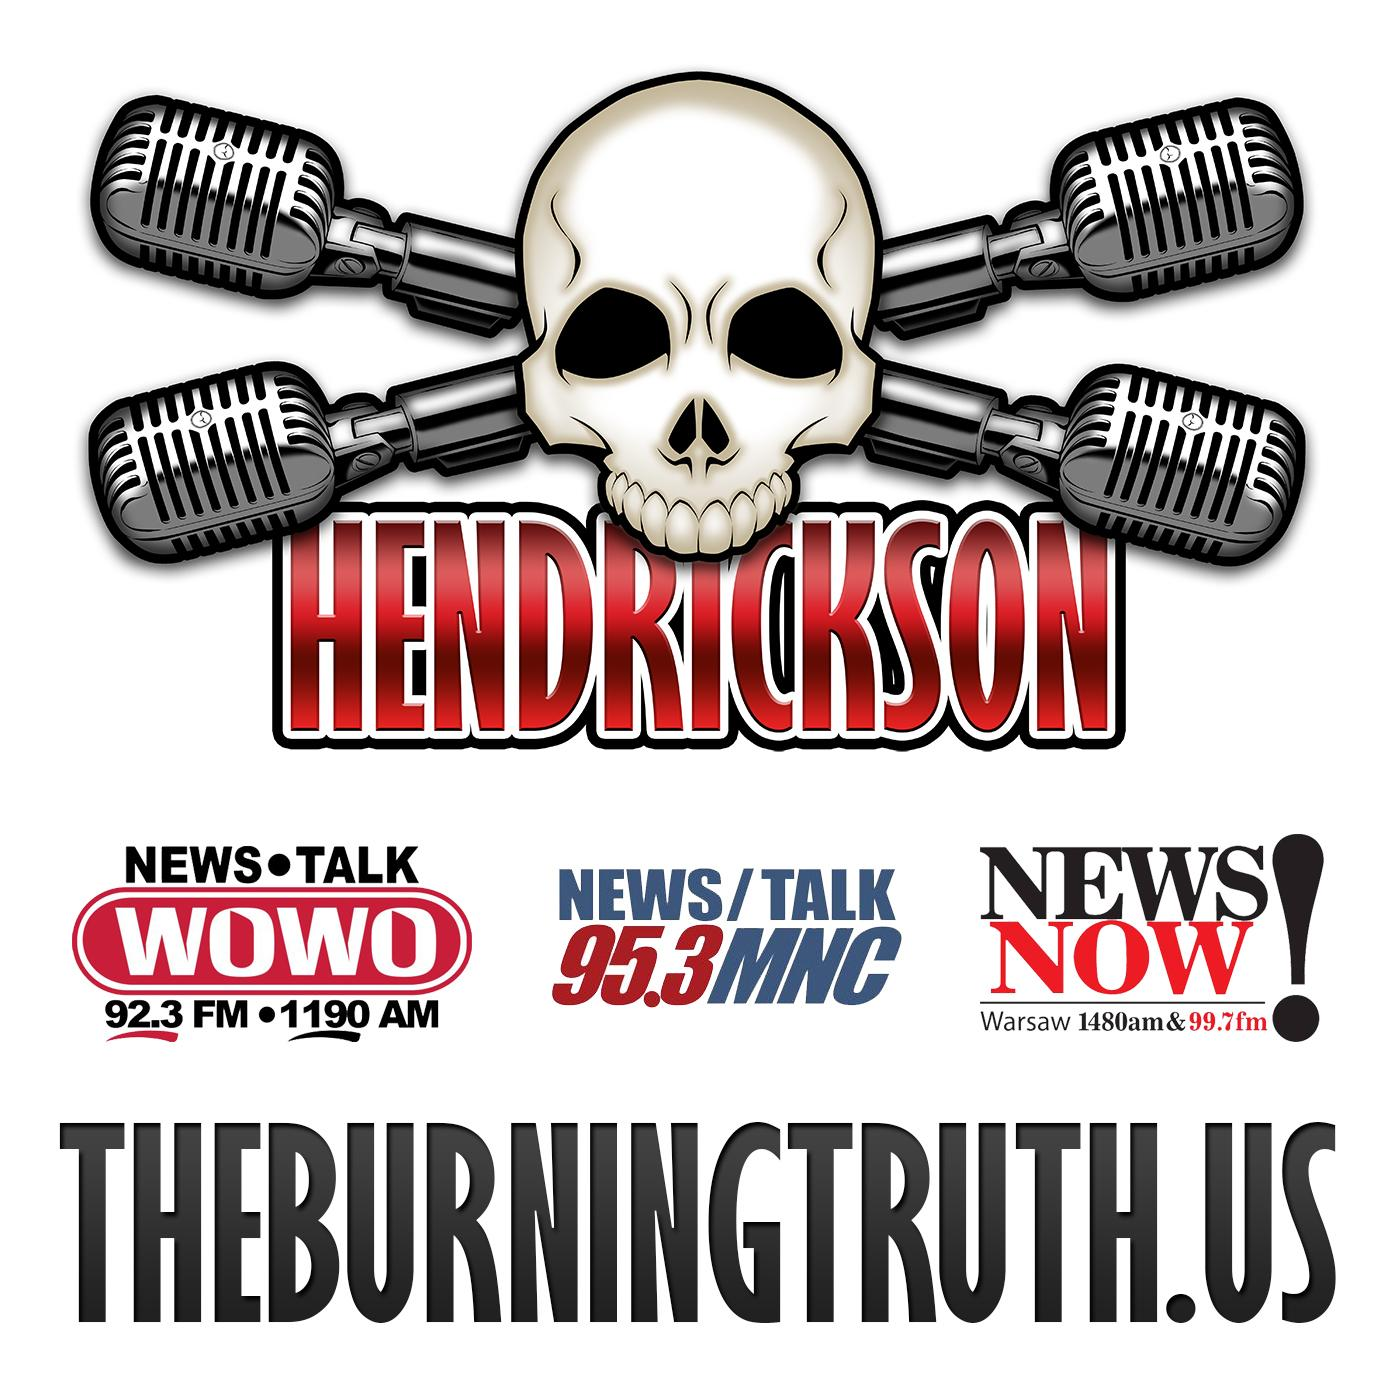 Casey Hendrickson's The Burning Truth